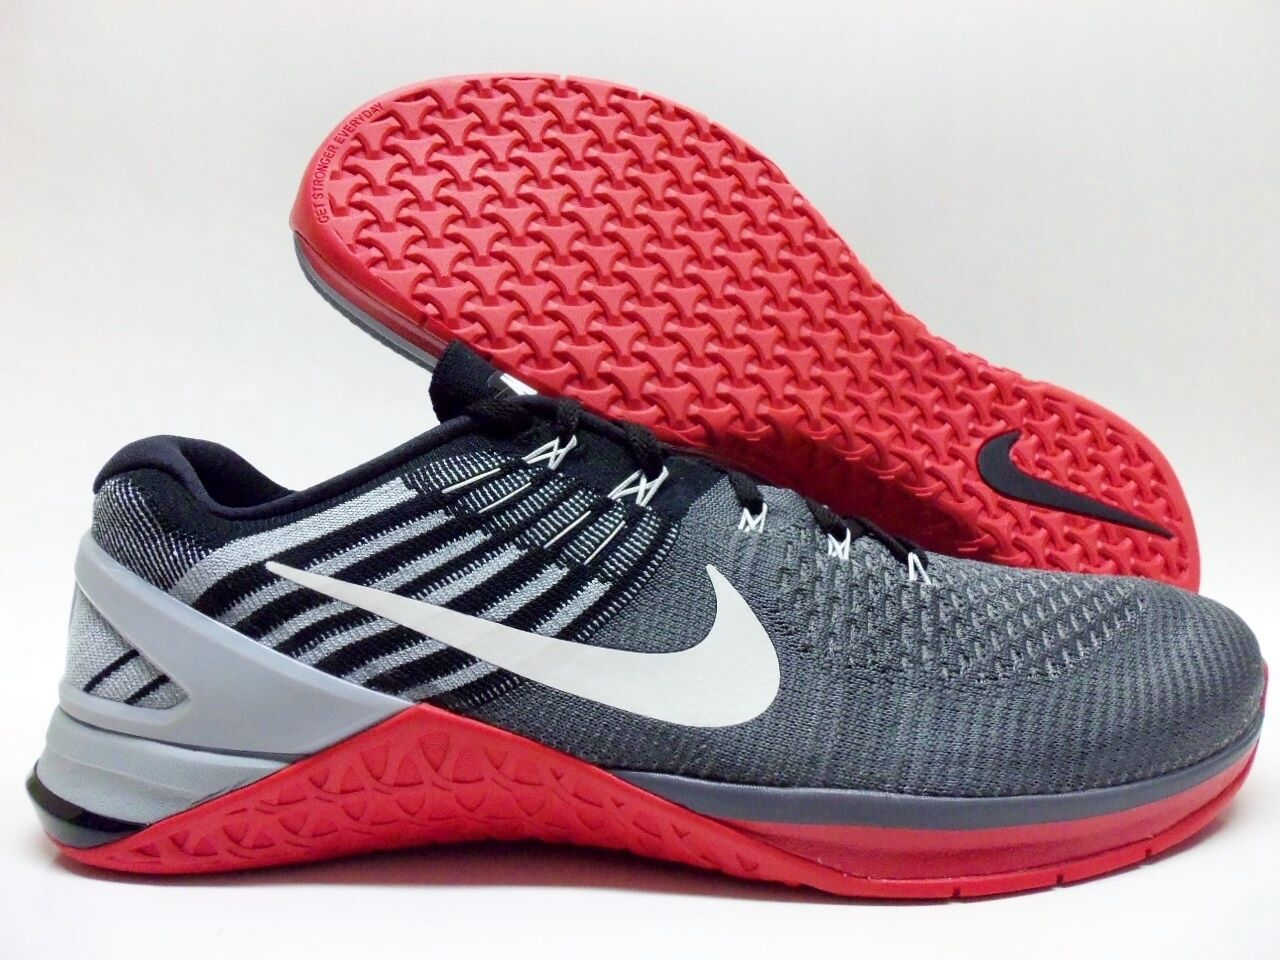 NIKE METCON DSX FLYKNIT DARK GREY/WHITE-UNIVERSITY RED Price reduction